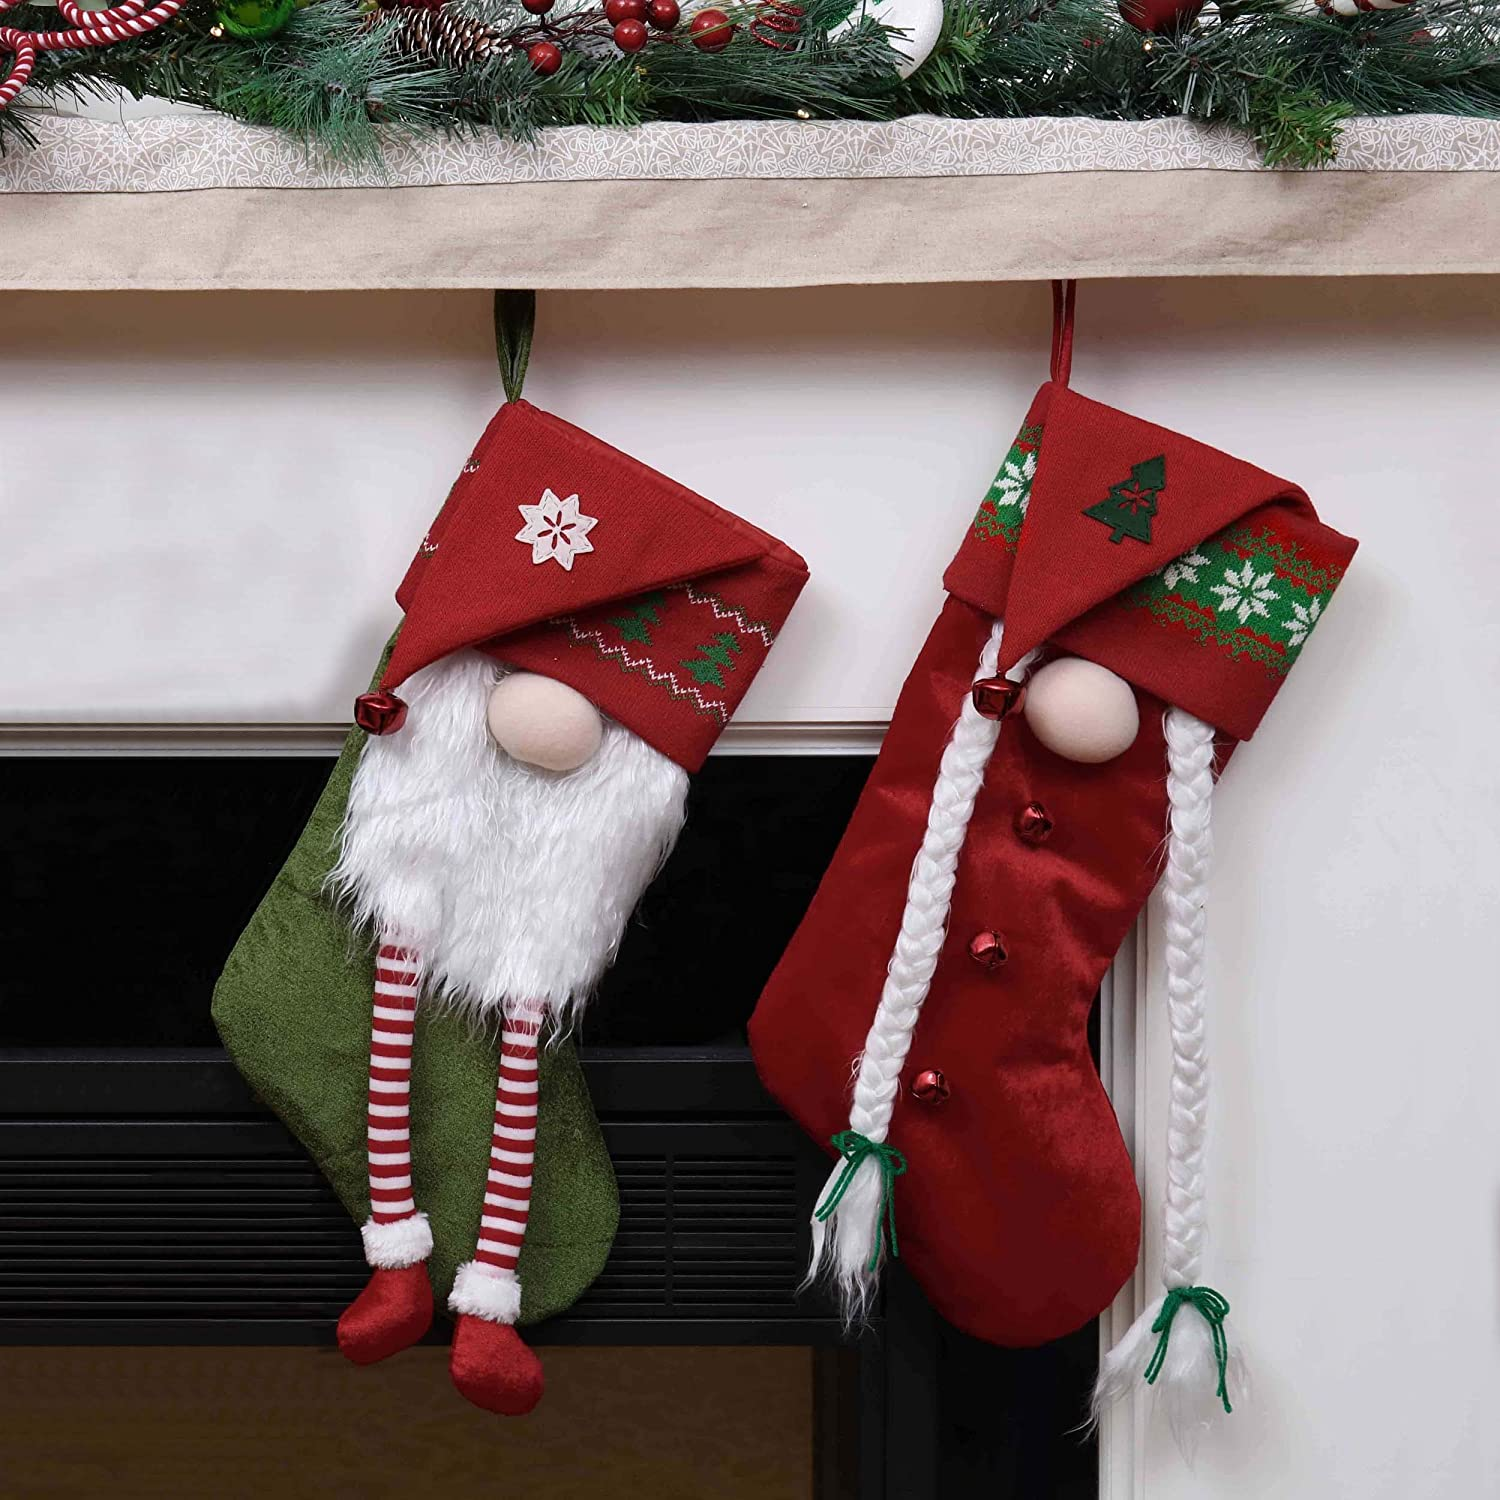 Themed with Tree Skirt Not Included Valery Madelyn 21 inch 2 Pack 3D Funny Gnome Christmas Stockings Decorations with Knit Christmas Hat